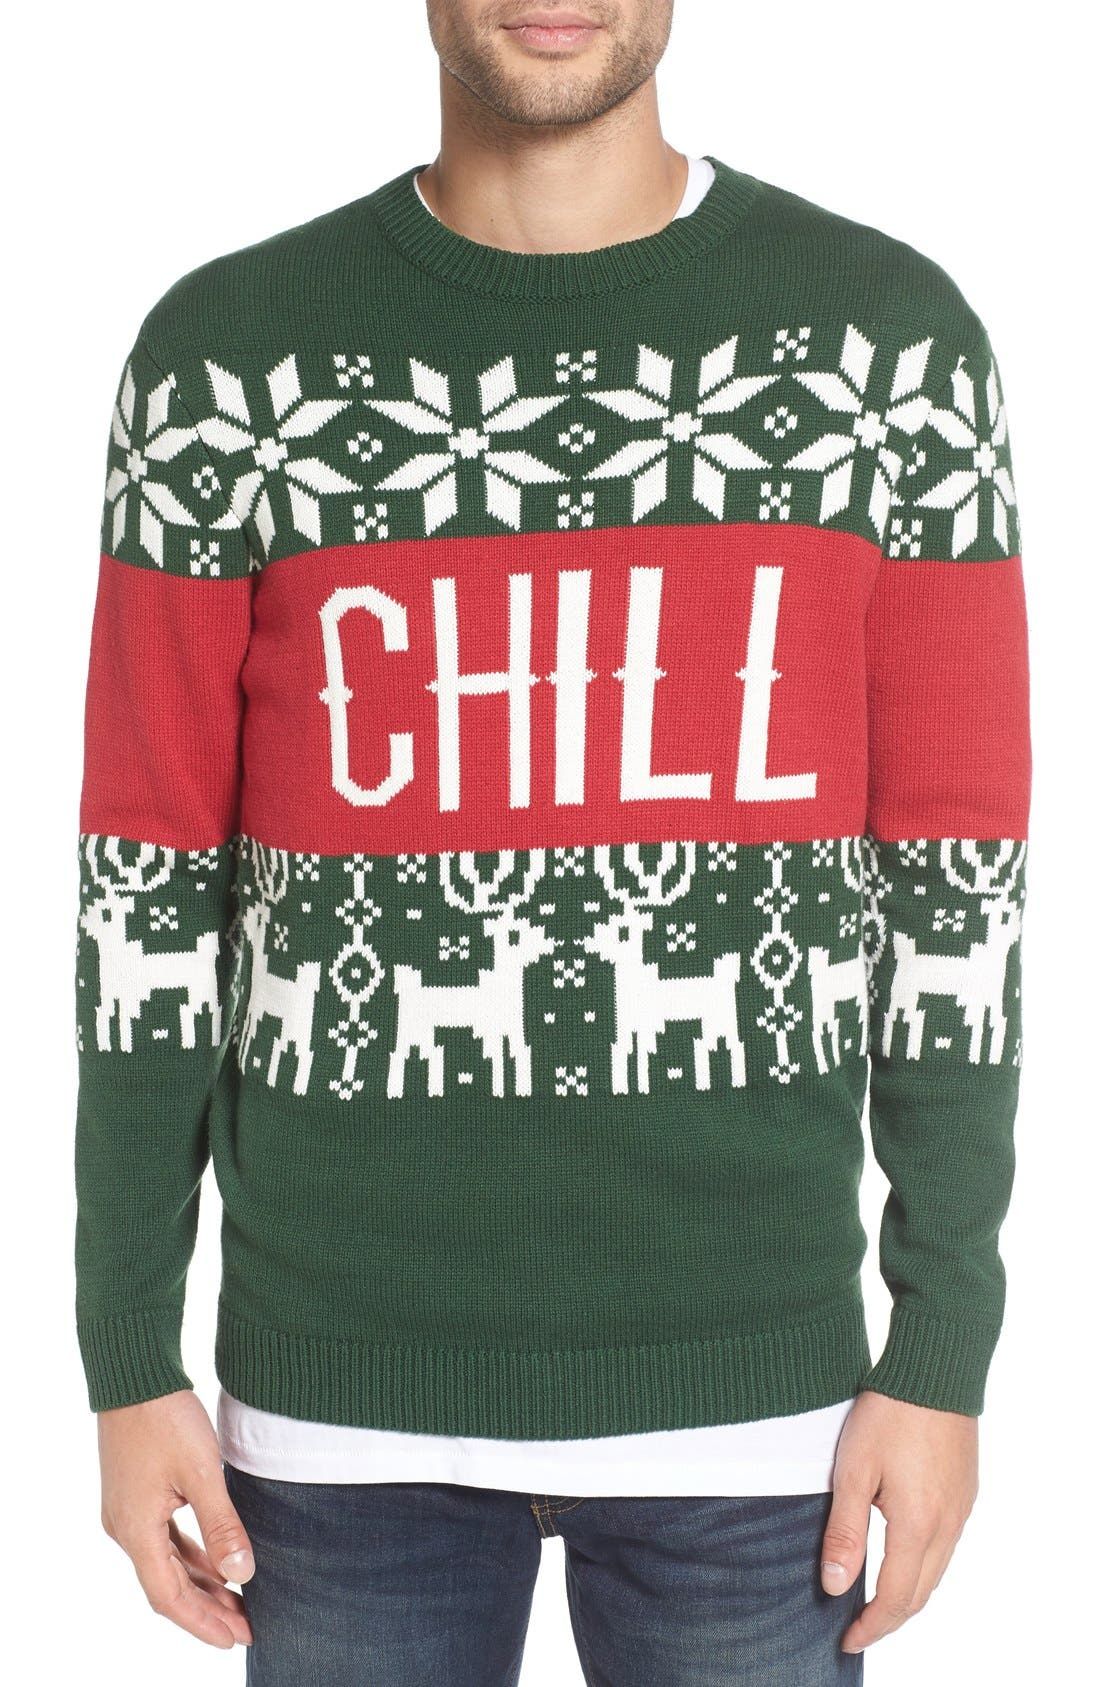 'Chill Vibes' Intarsia Crewneck Sweater,                             Main thumbnail 1, color,                             Red/ Green